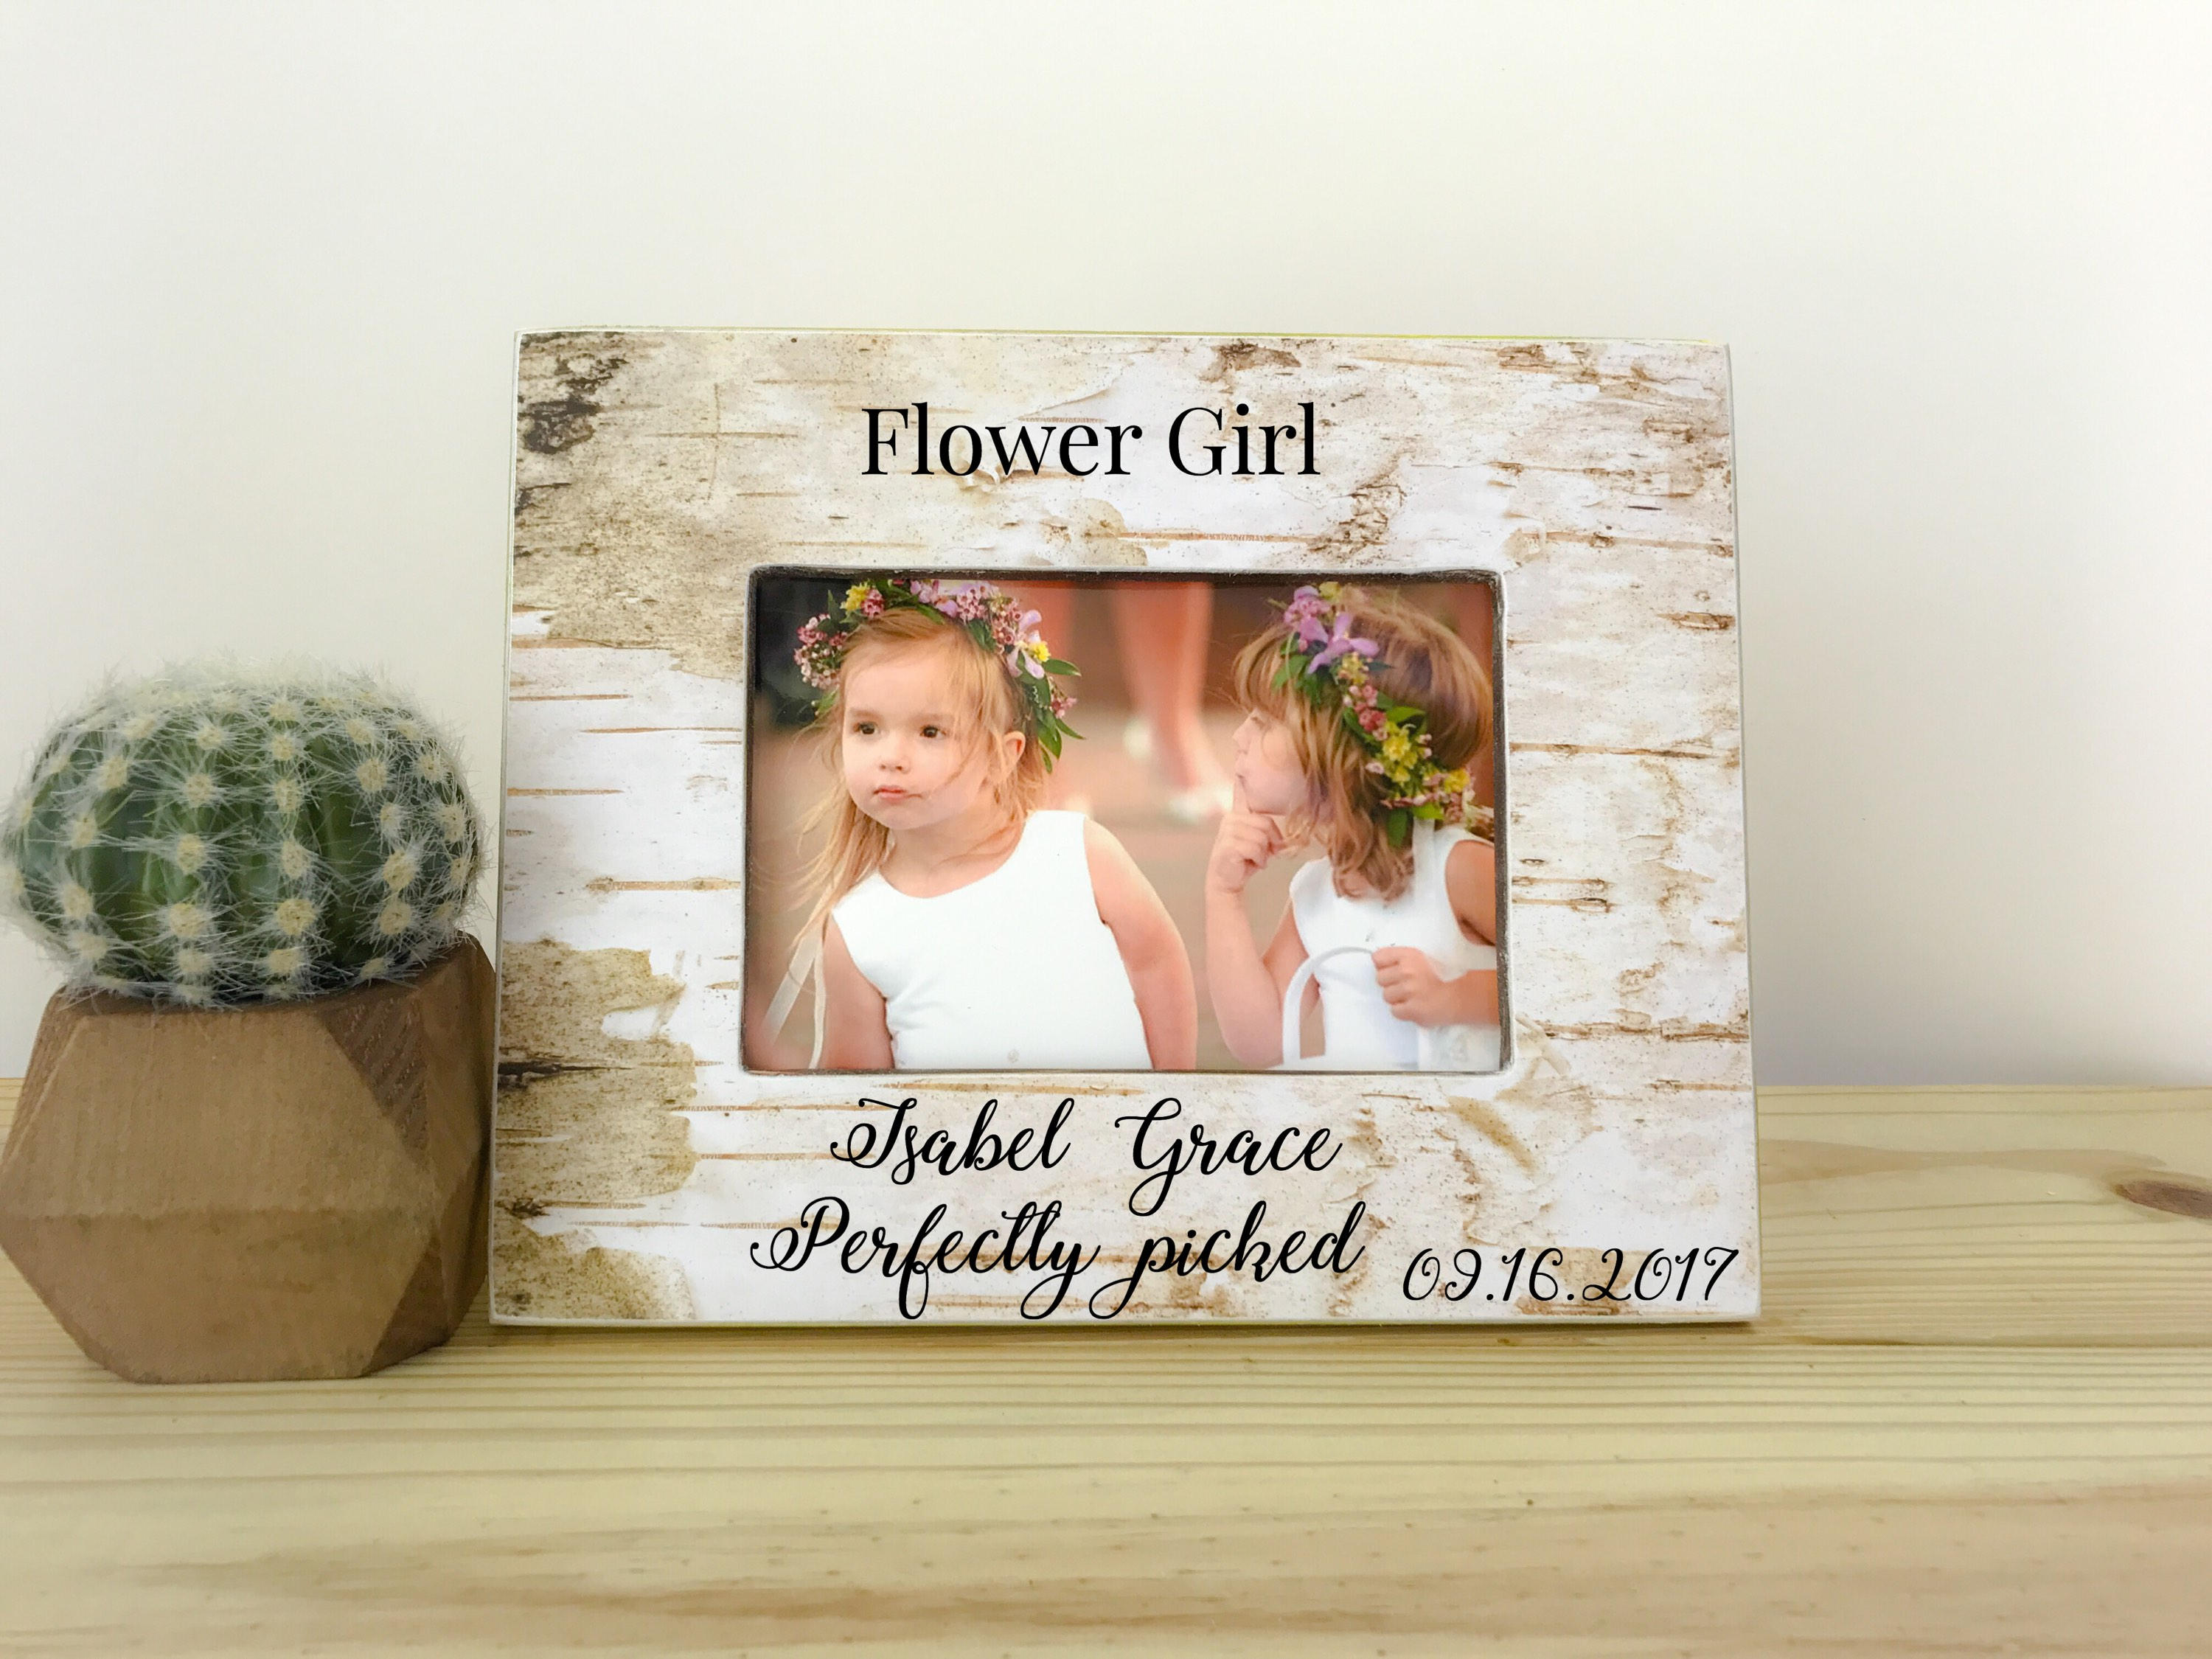 Flower Girl GIFT Personalized Flower Girl Frame Personalized